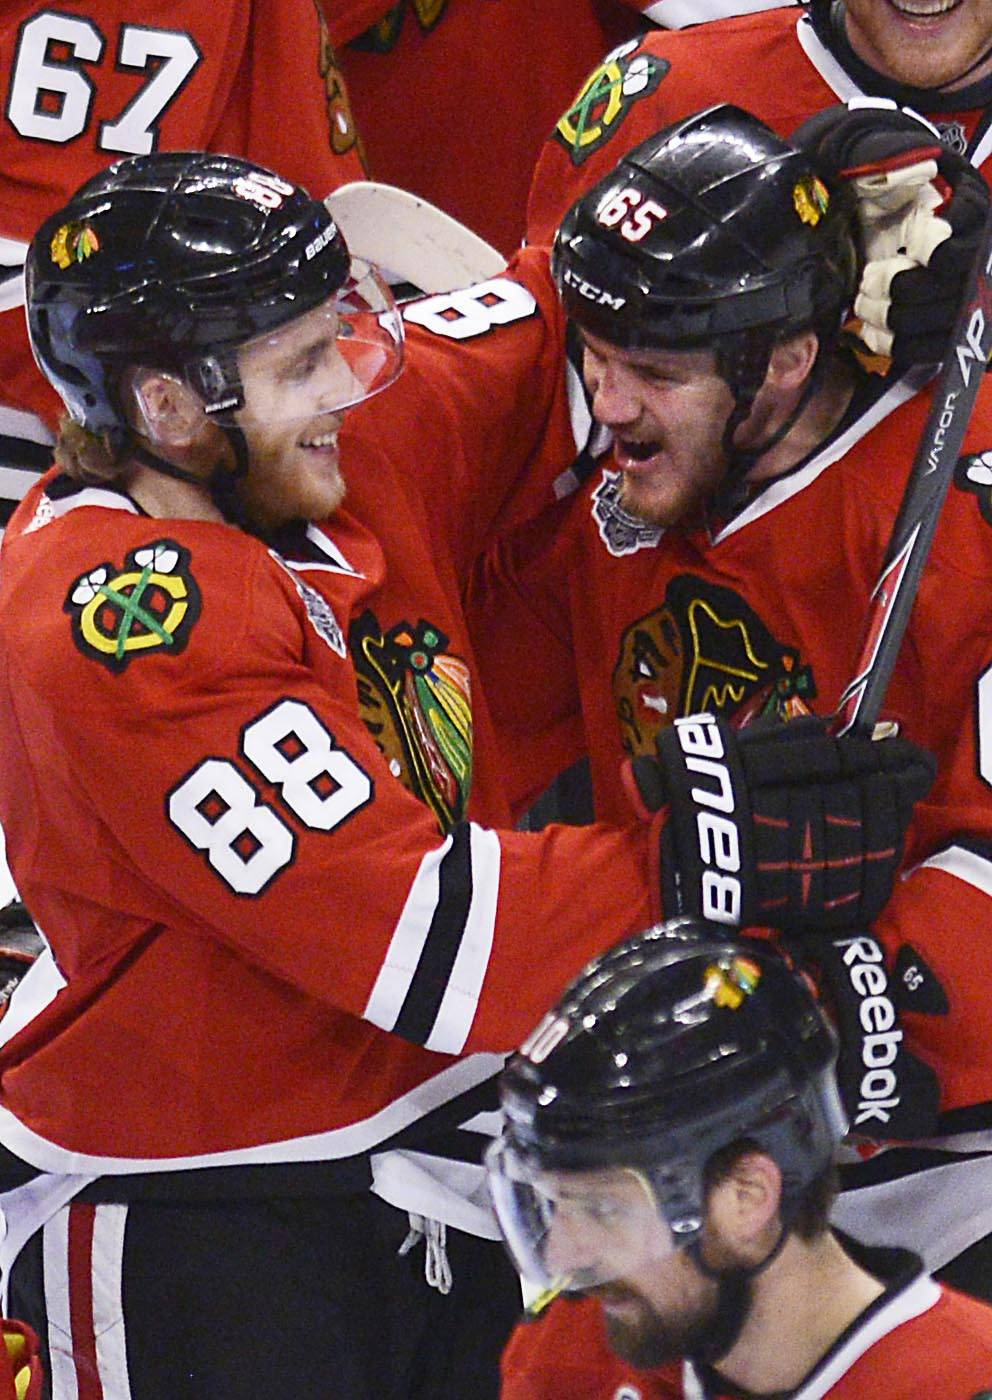 Chicago Blackhawks center Andrew Shaw is hugged by teammate Patrick Kane after his game winning goal in the third overtime of Game 1 of the Stanley Cup Finals Wednesday at the Untied Center in Chicago.